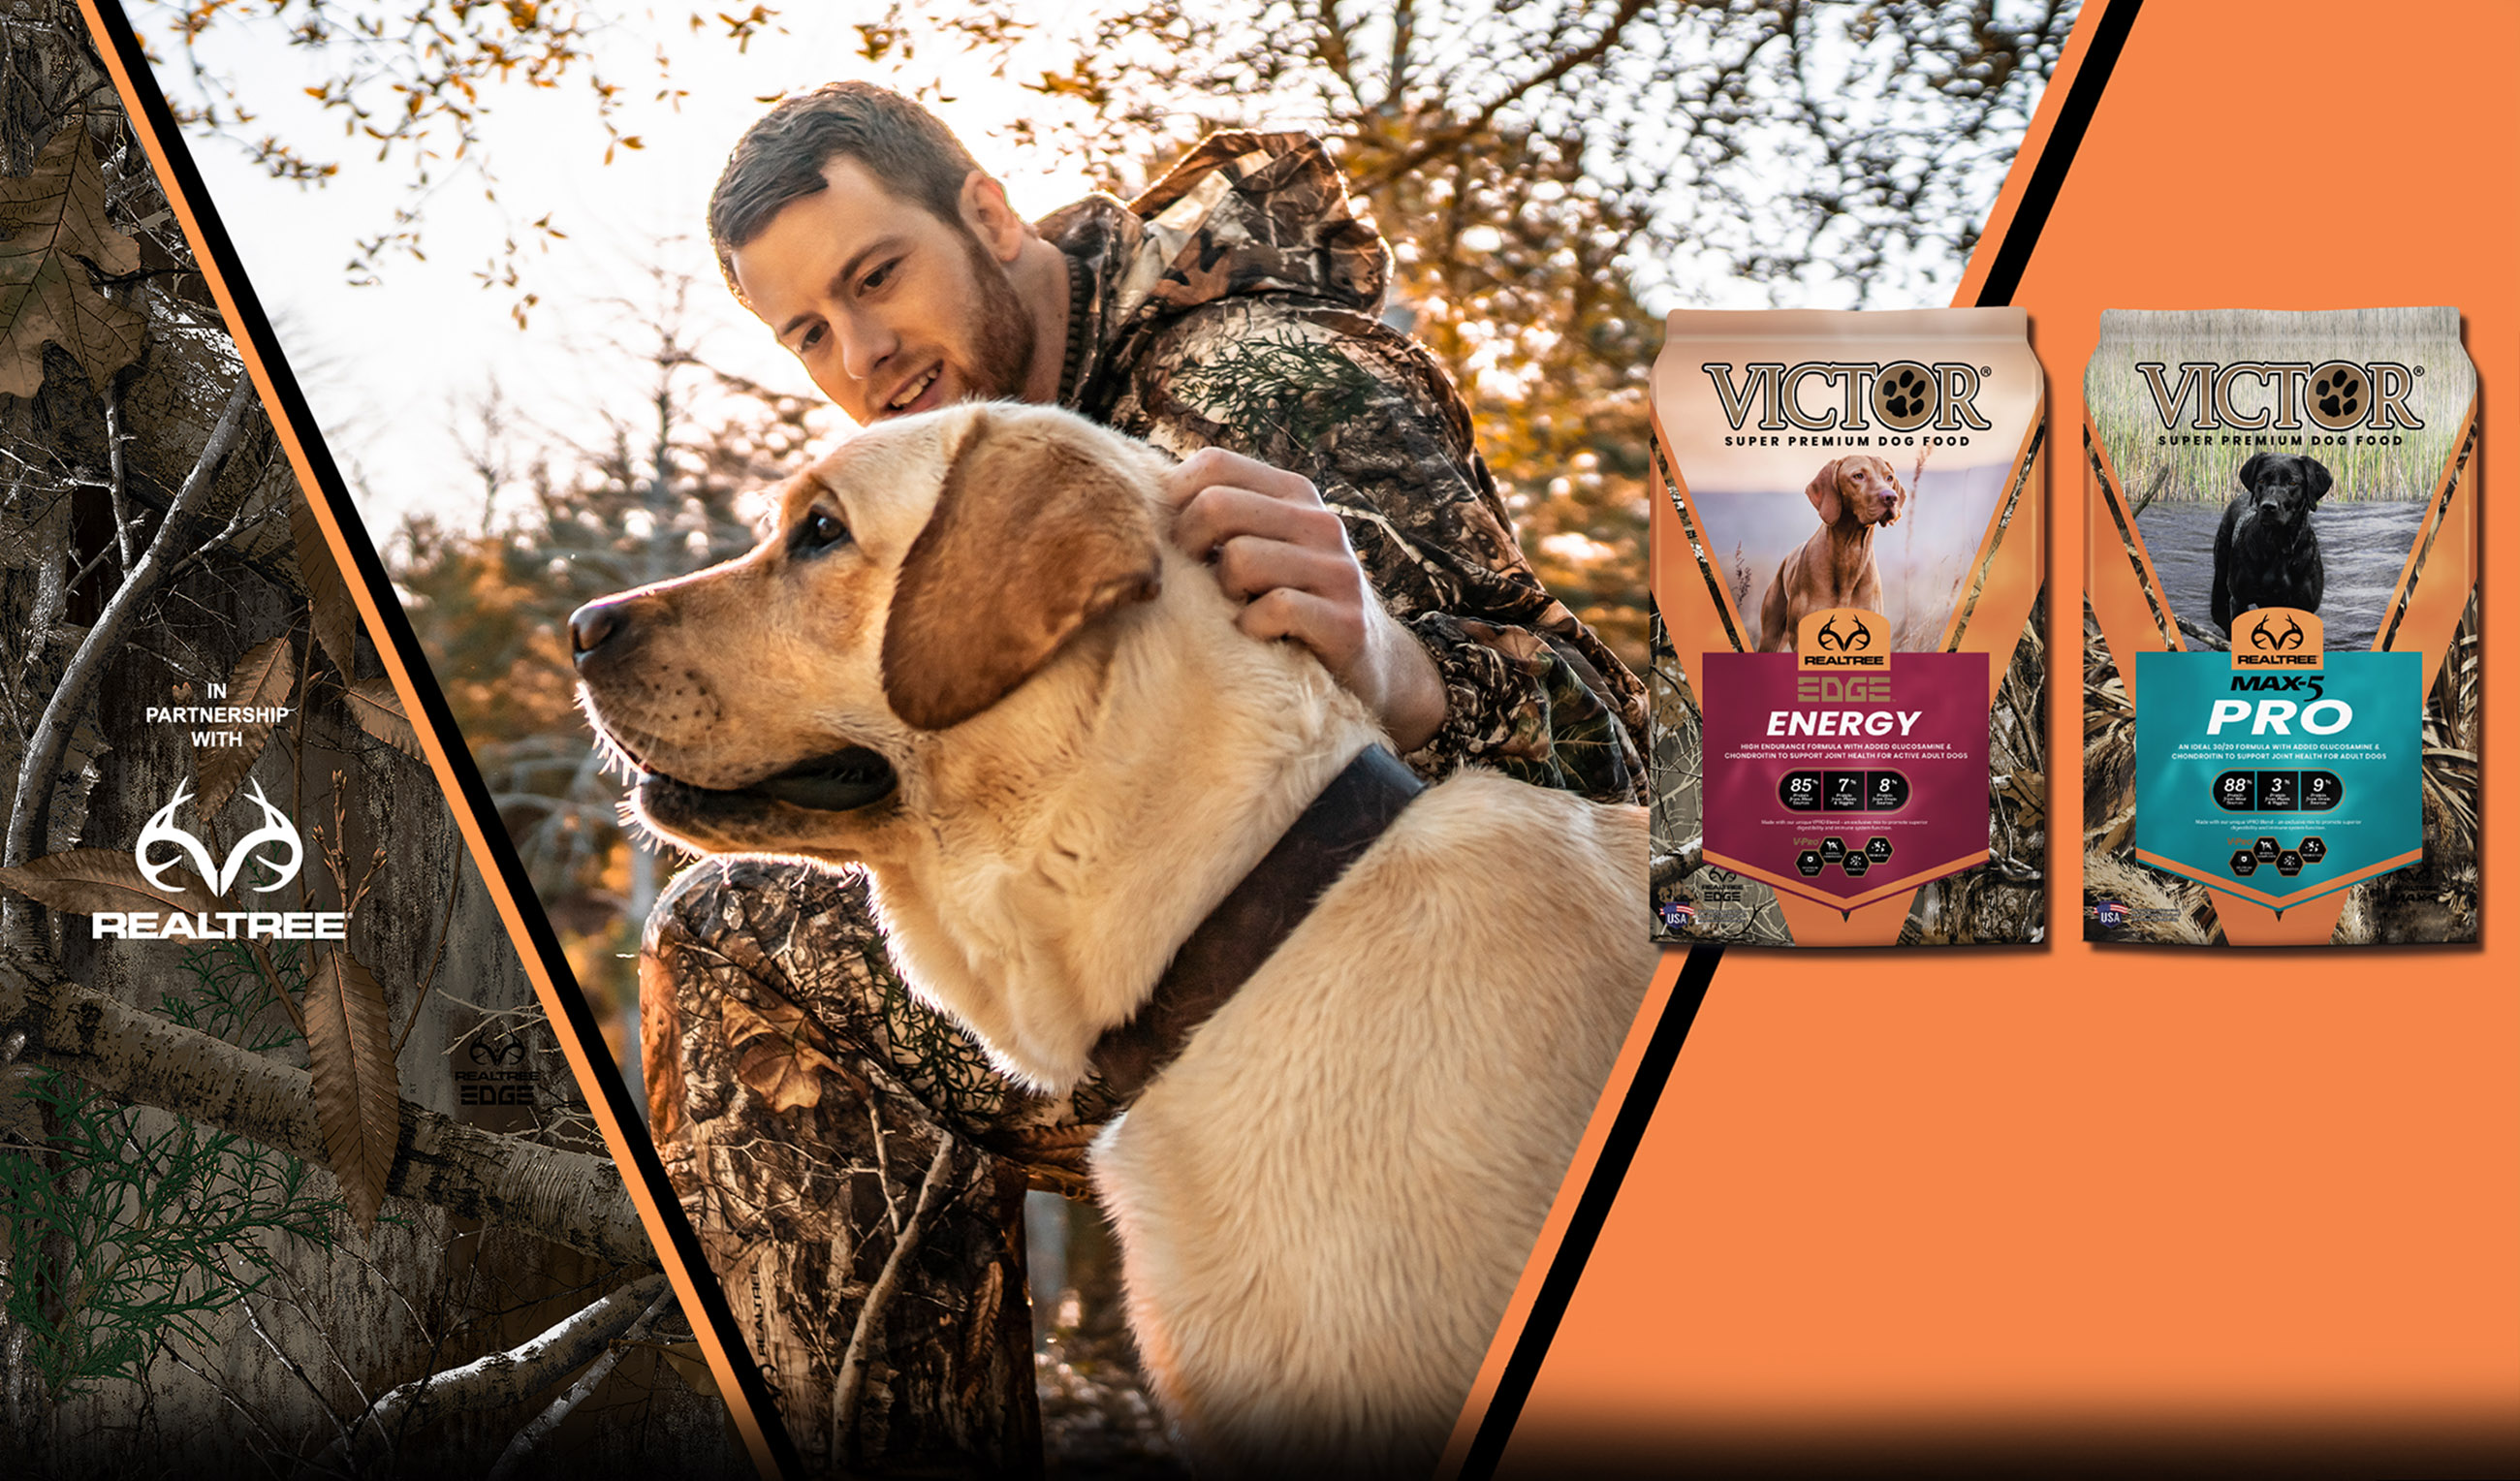 VICTOR and Realtree